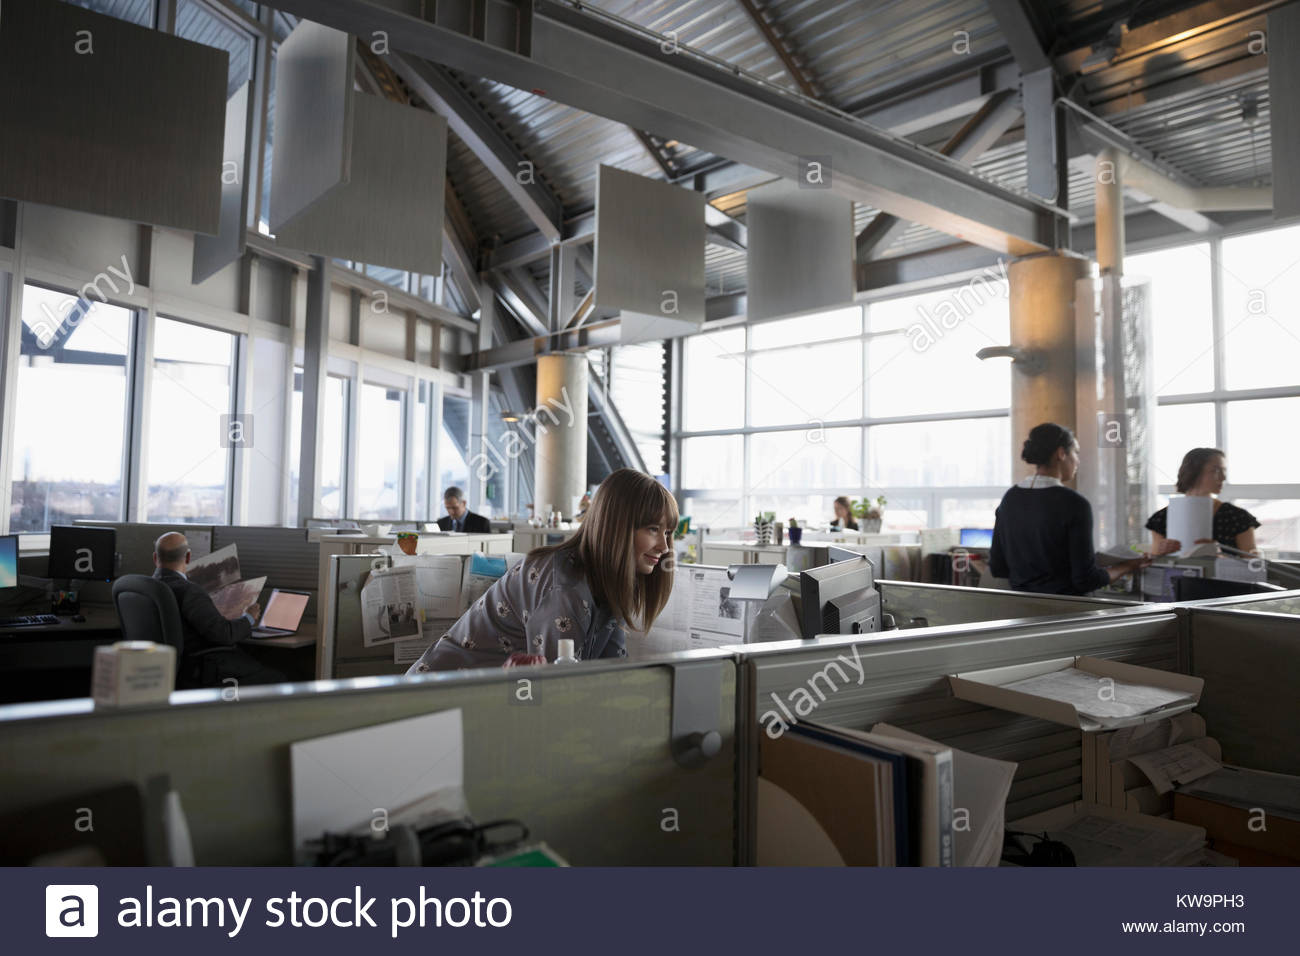 Business people working at cubicles in open plan office - Stock Image